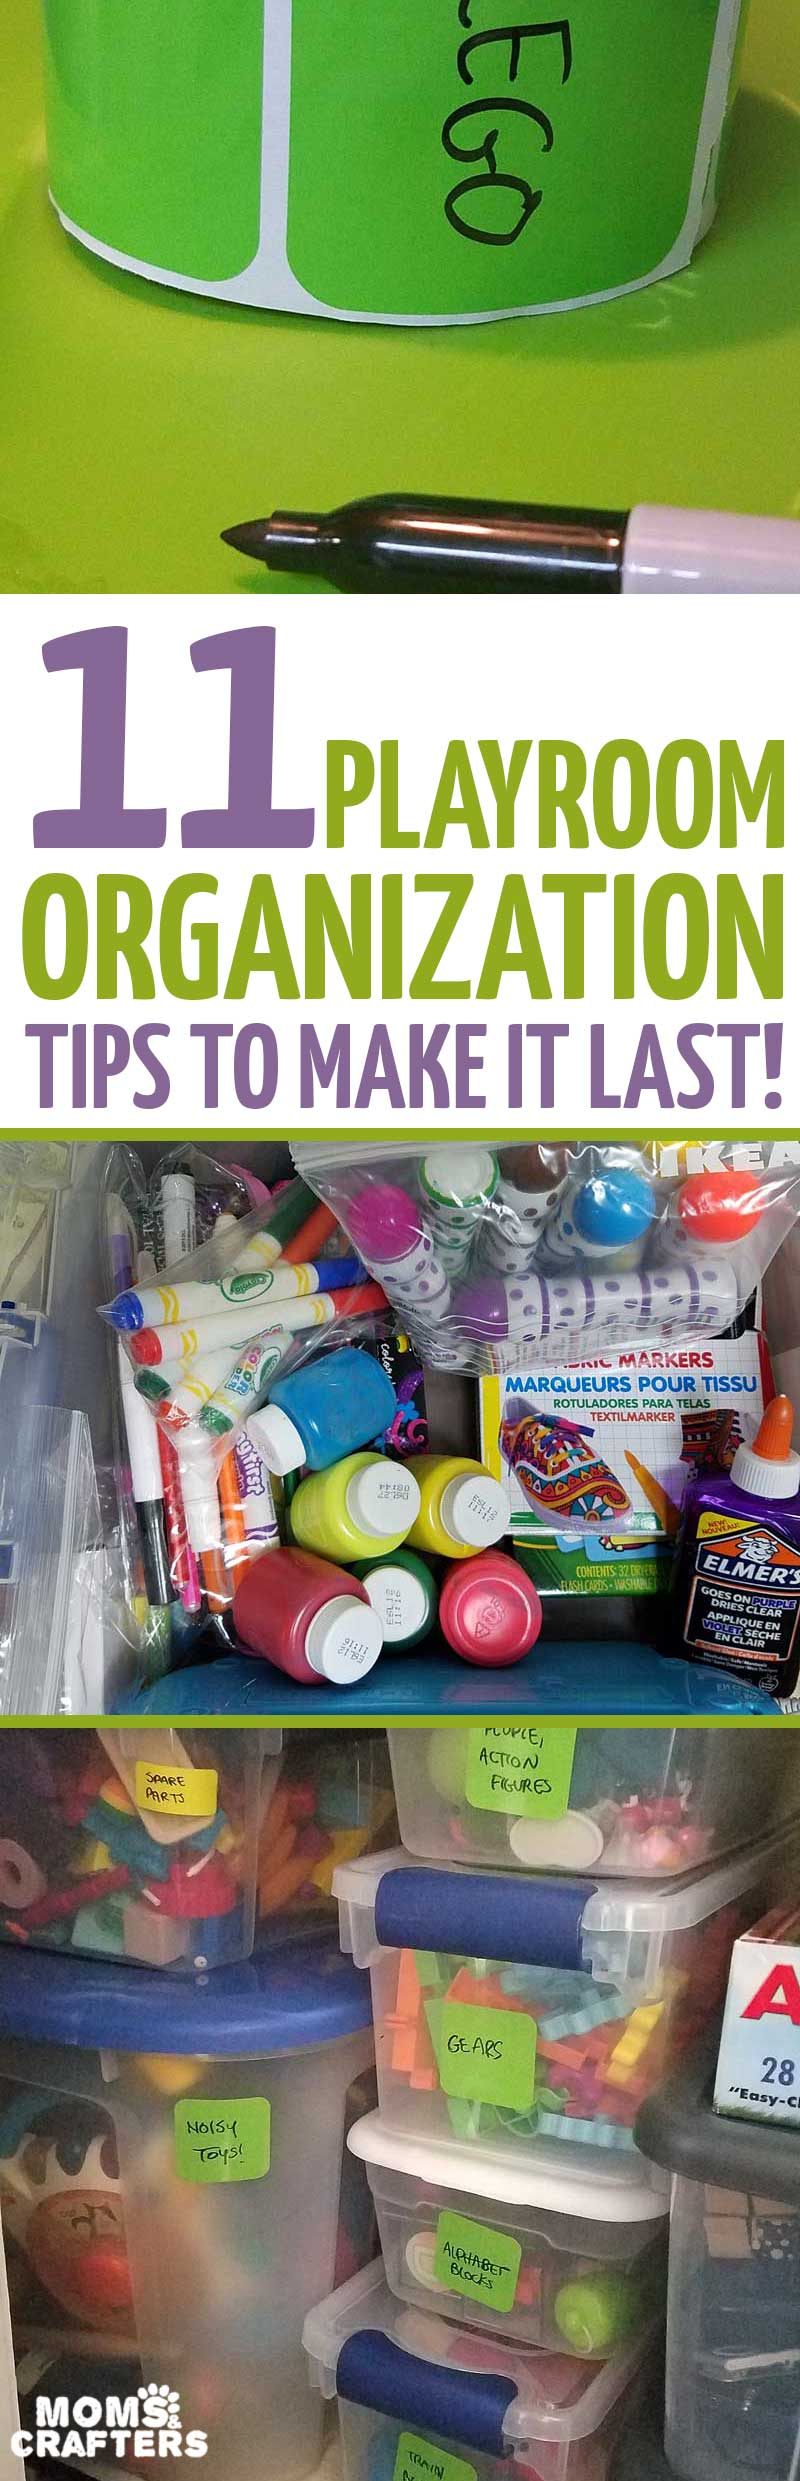 You'll totally nail your playroom organization with this step-by-step guide that's full of toy organization hacks that I implemented in my own home. These Toy organization ideas for small spaces are perfect for a living room and are totally cheap, including which bins and labels to use, and how to keep your playroom closet neat even with a toddler! #organization #playroom #momsandcrafters